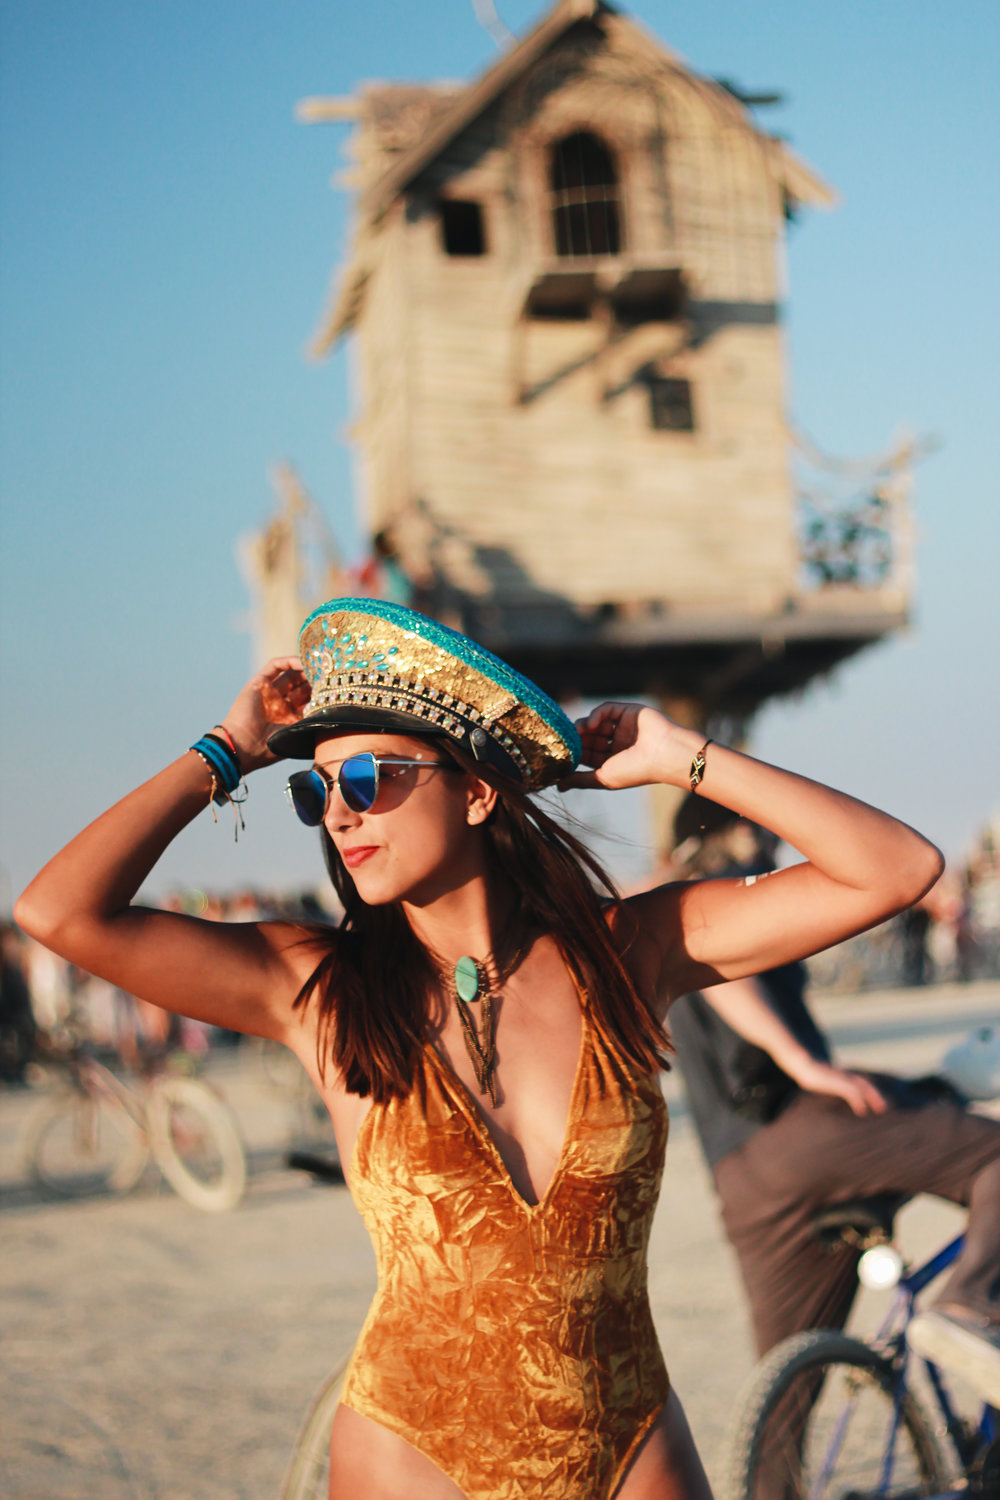 chrissihernandez_nevada_blackrockcity_burningman-(366)copy2500.jpg